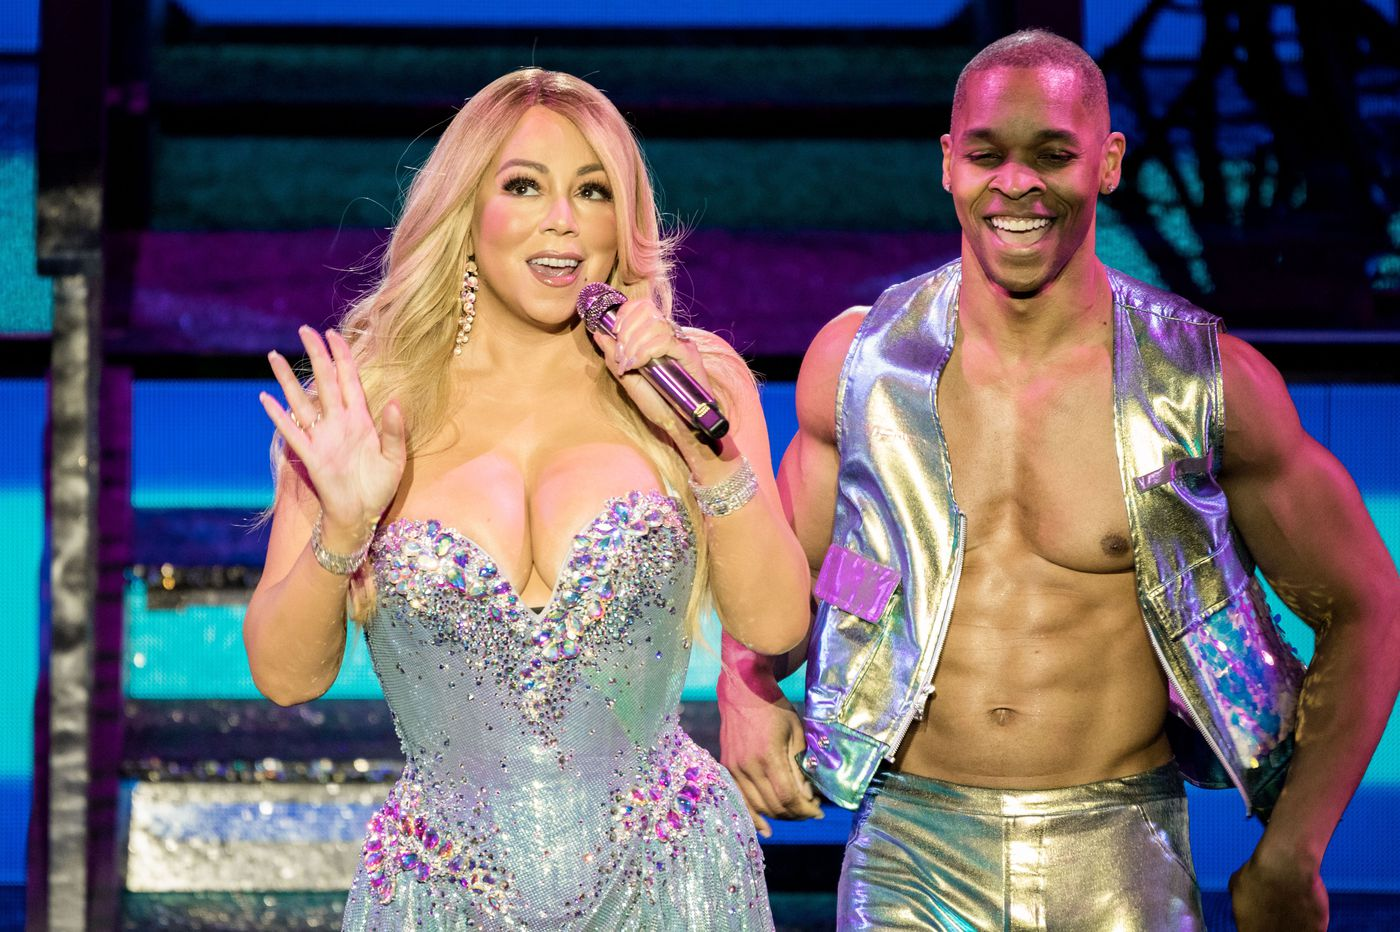 Mariah Carey pulls the ultimate diva move at her concert at the Met: proclaiming she's not a diva